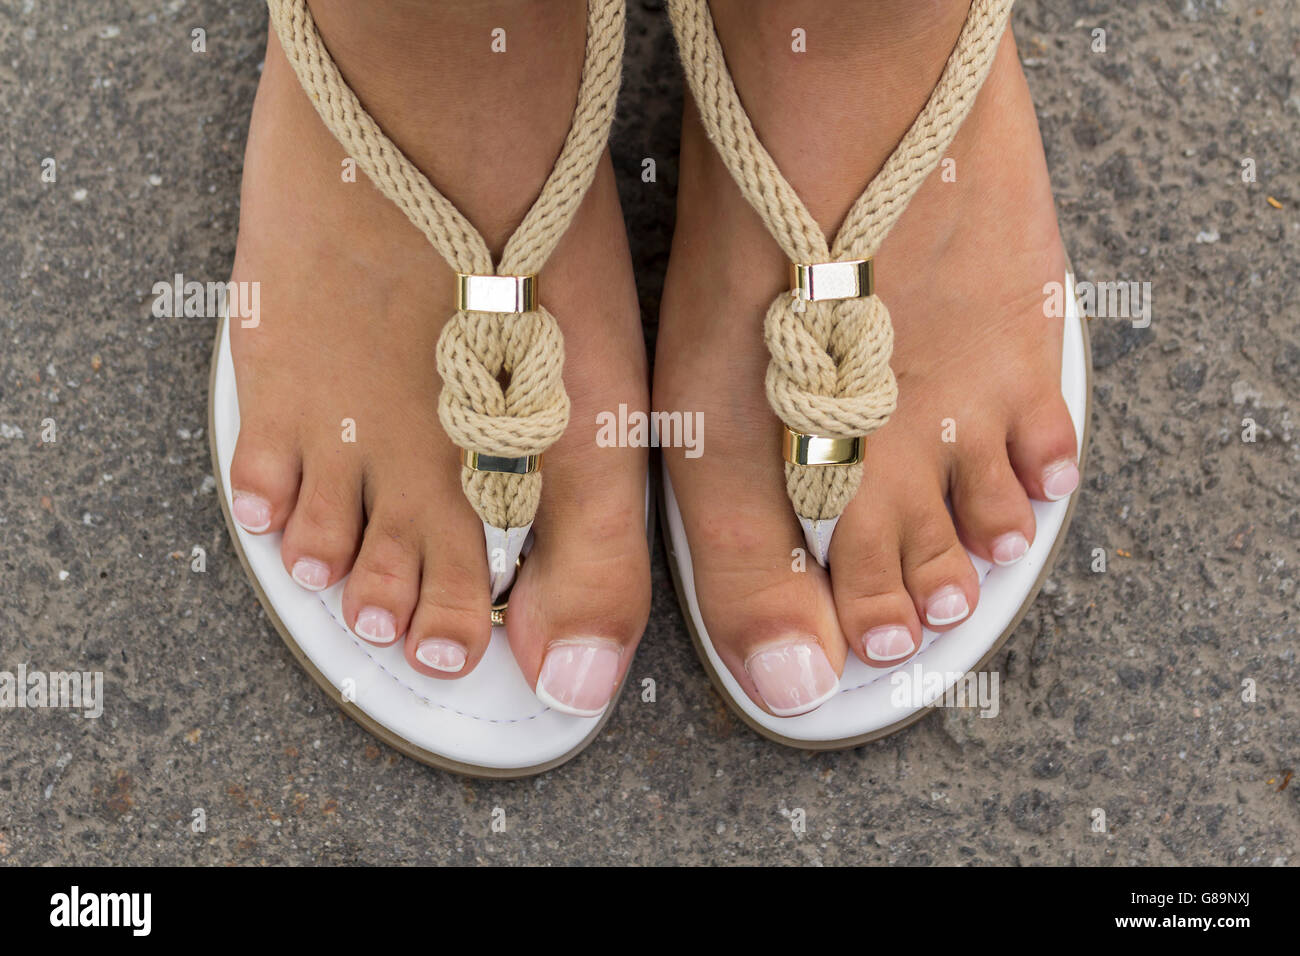 2b3a6329d39fba Girl s Feet In Sandals Stock Photos   Girl s Feet In Sandals Stock ...